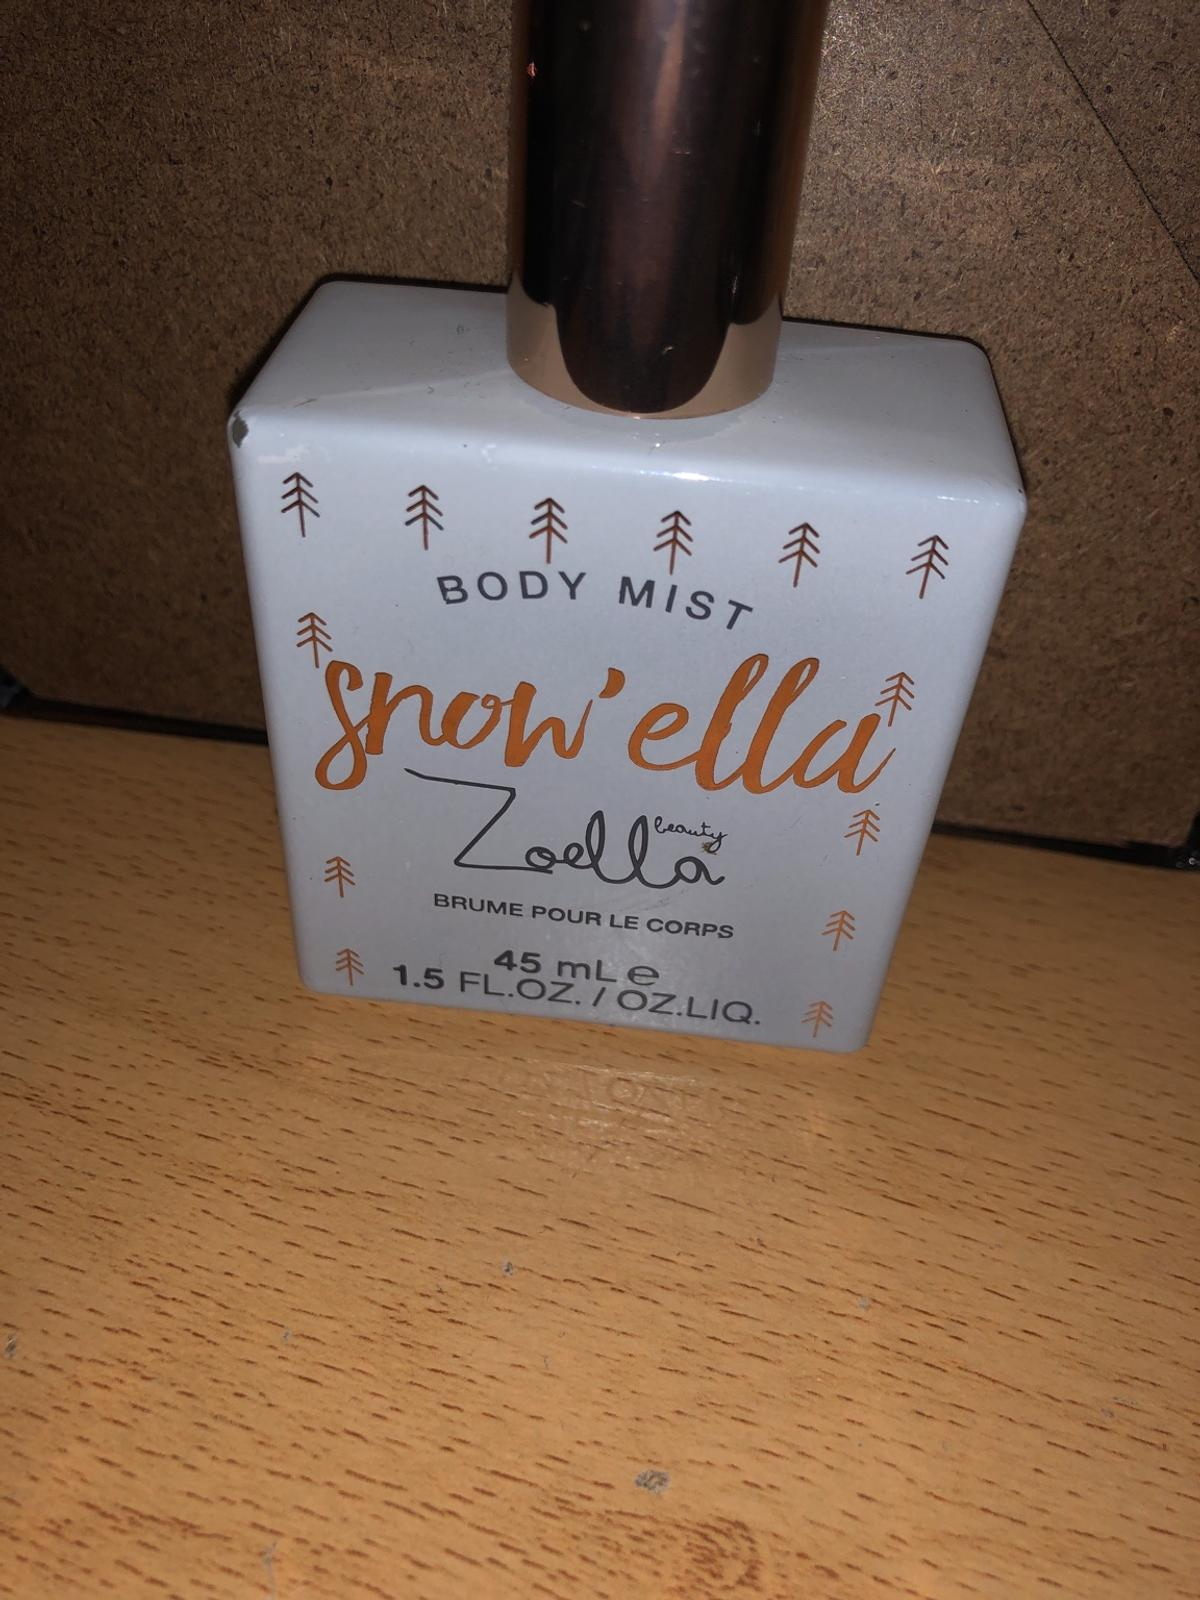 Body mist snow Ella 100ml £5) 45ml £2) Bought but never used